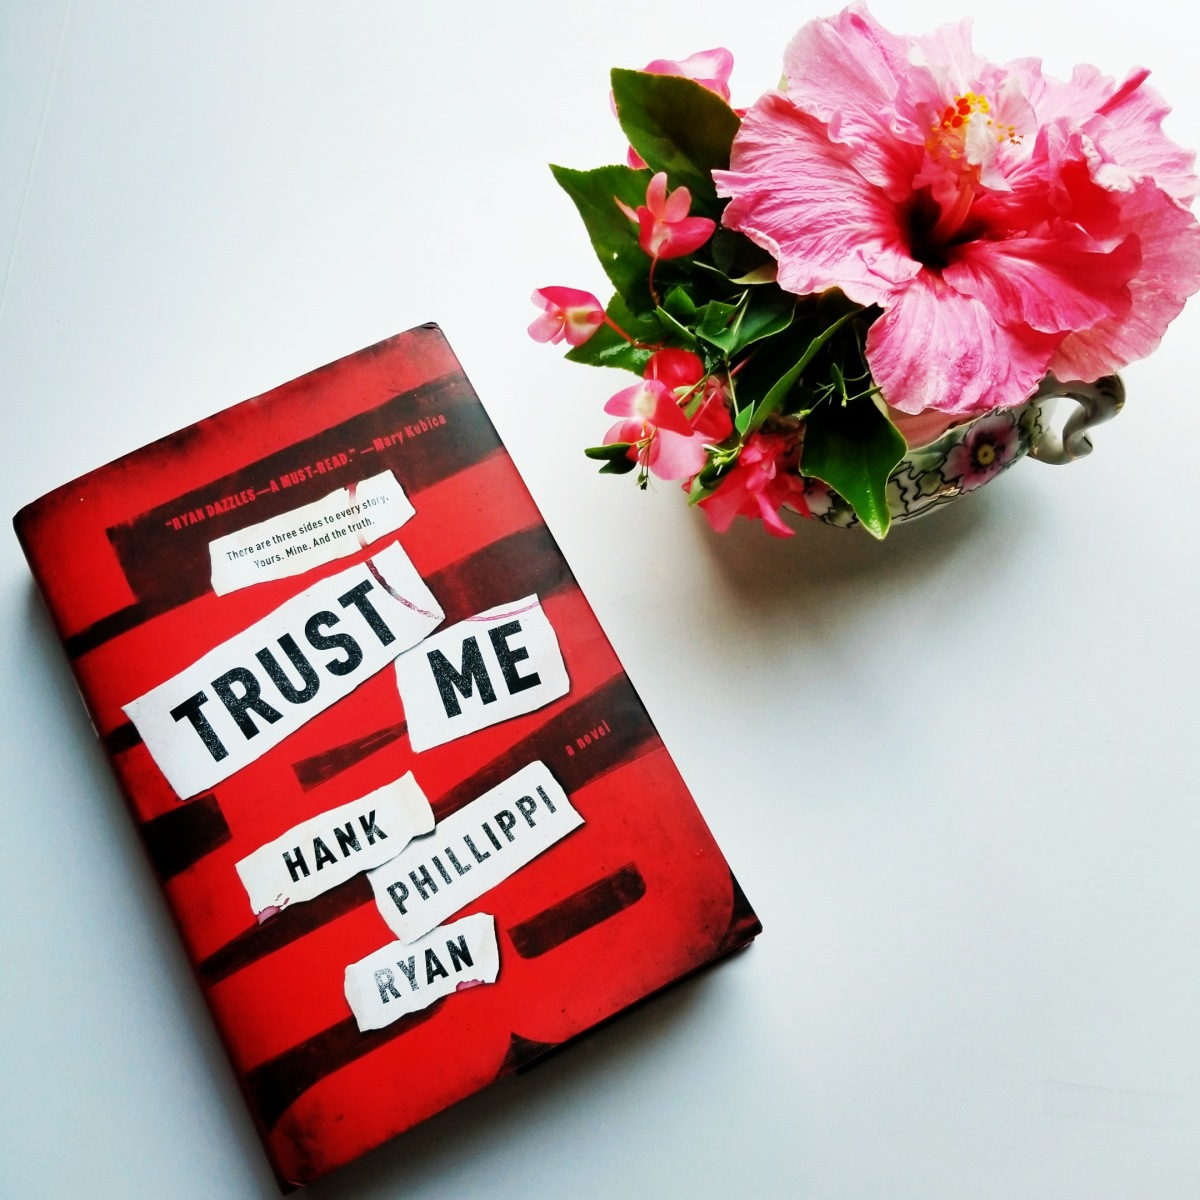 First Line Fridays: Trust Me by Hank Phillippi Ryan #firstlinefridays #tarheelreader #thrtrustme @hankpryan @torbooks #trustmebook #6bookbestiestrustme